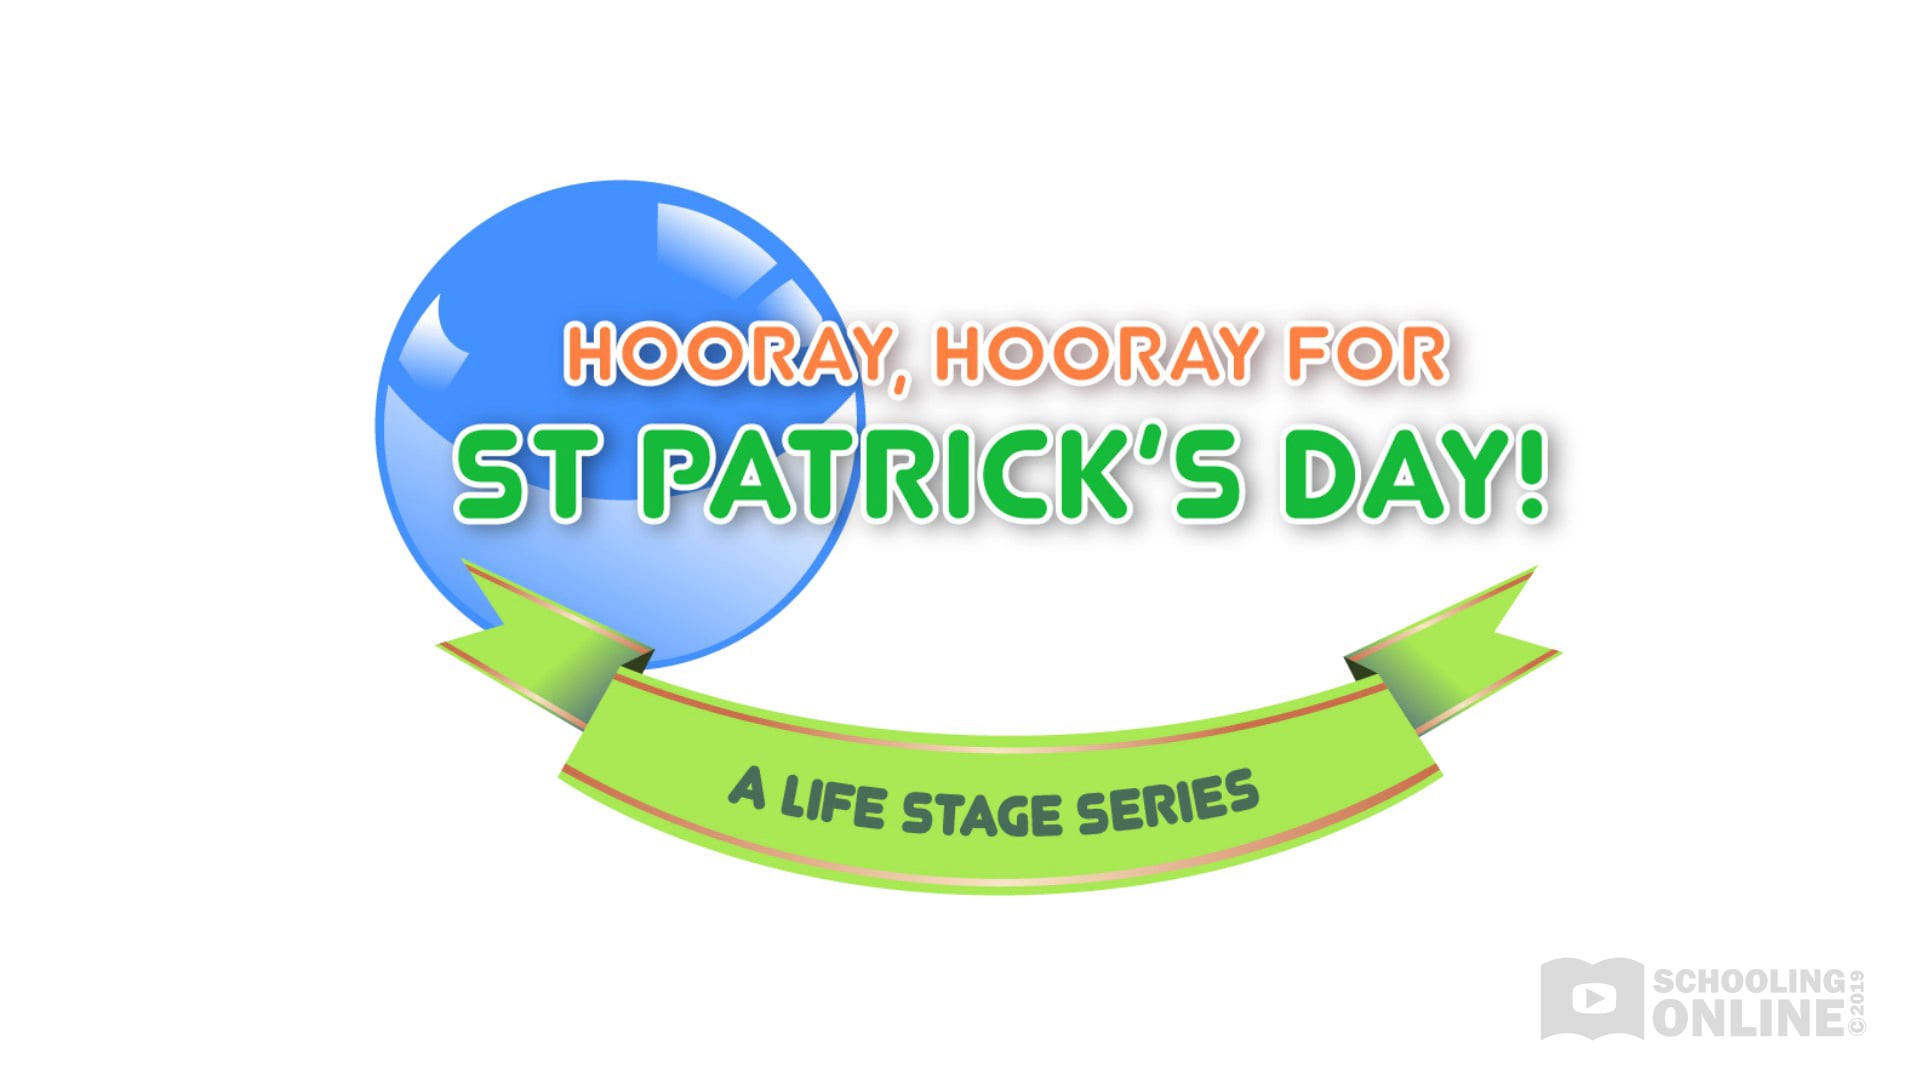 Hooray, Hooray for St Patrick's Day - The Life Stage Series